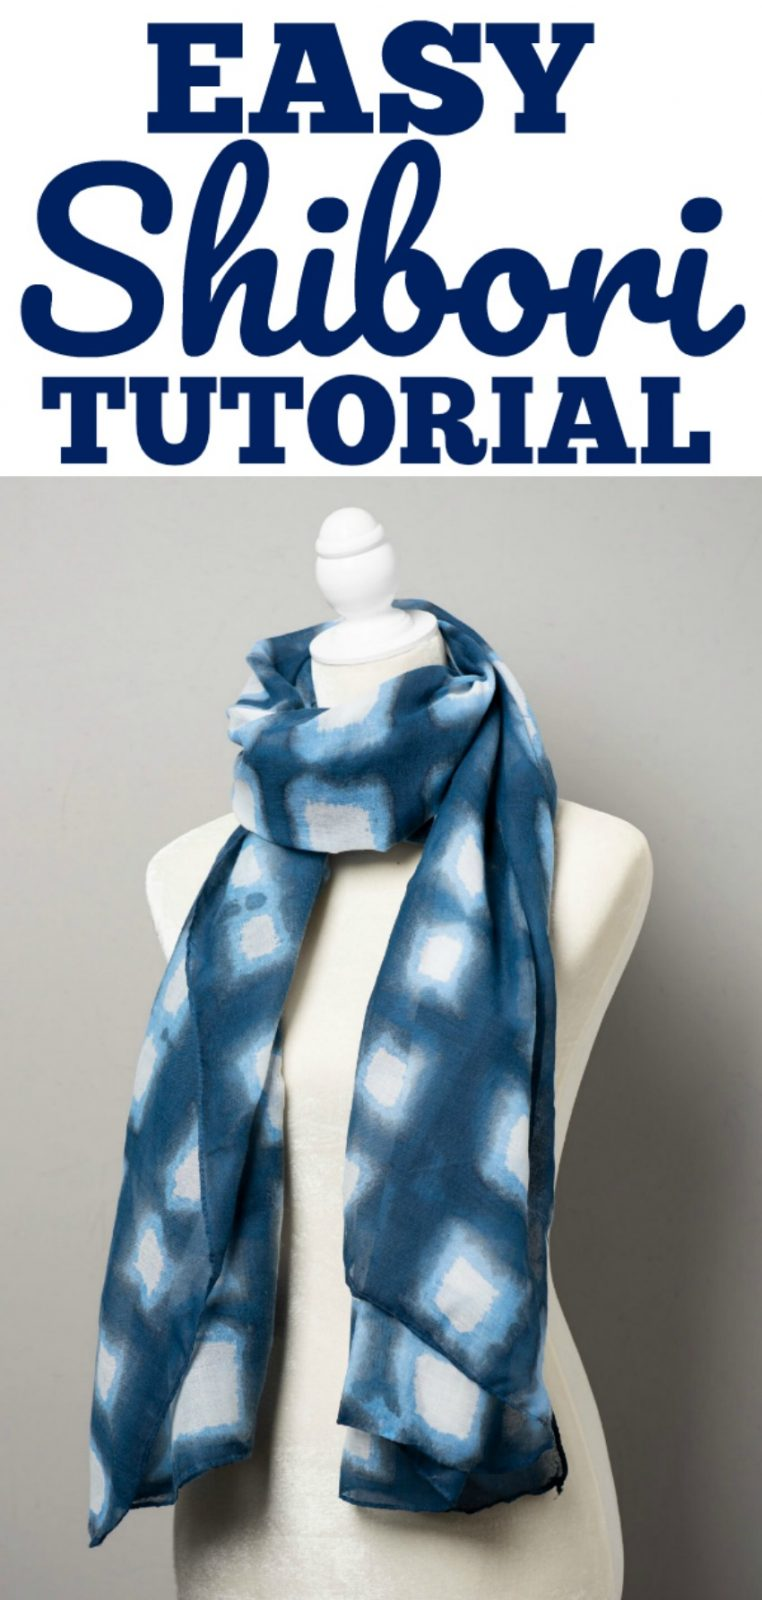 Shibori Tutorial made easy! Learn how to shibori with this simple DIY craft tutorial using Fabric Creations paint and a simple folding pattern! A great summer craft idea! #crafts #shibori #shiboripatterns #howtoshibori